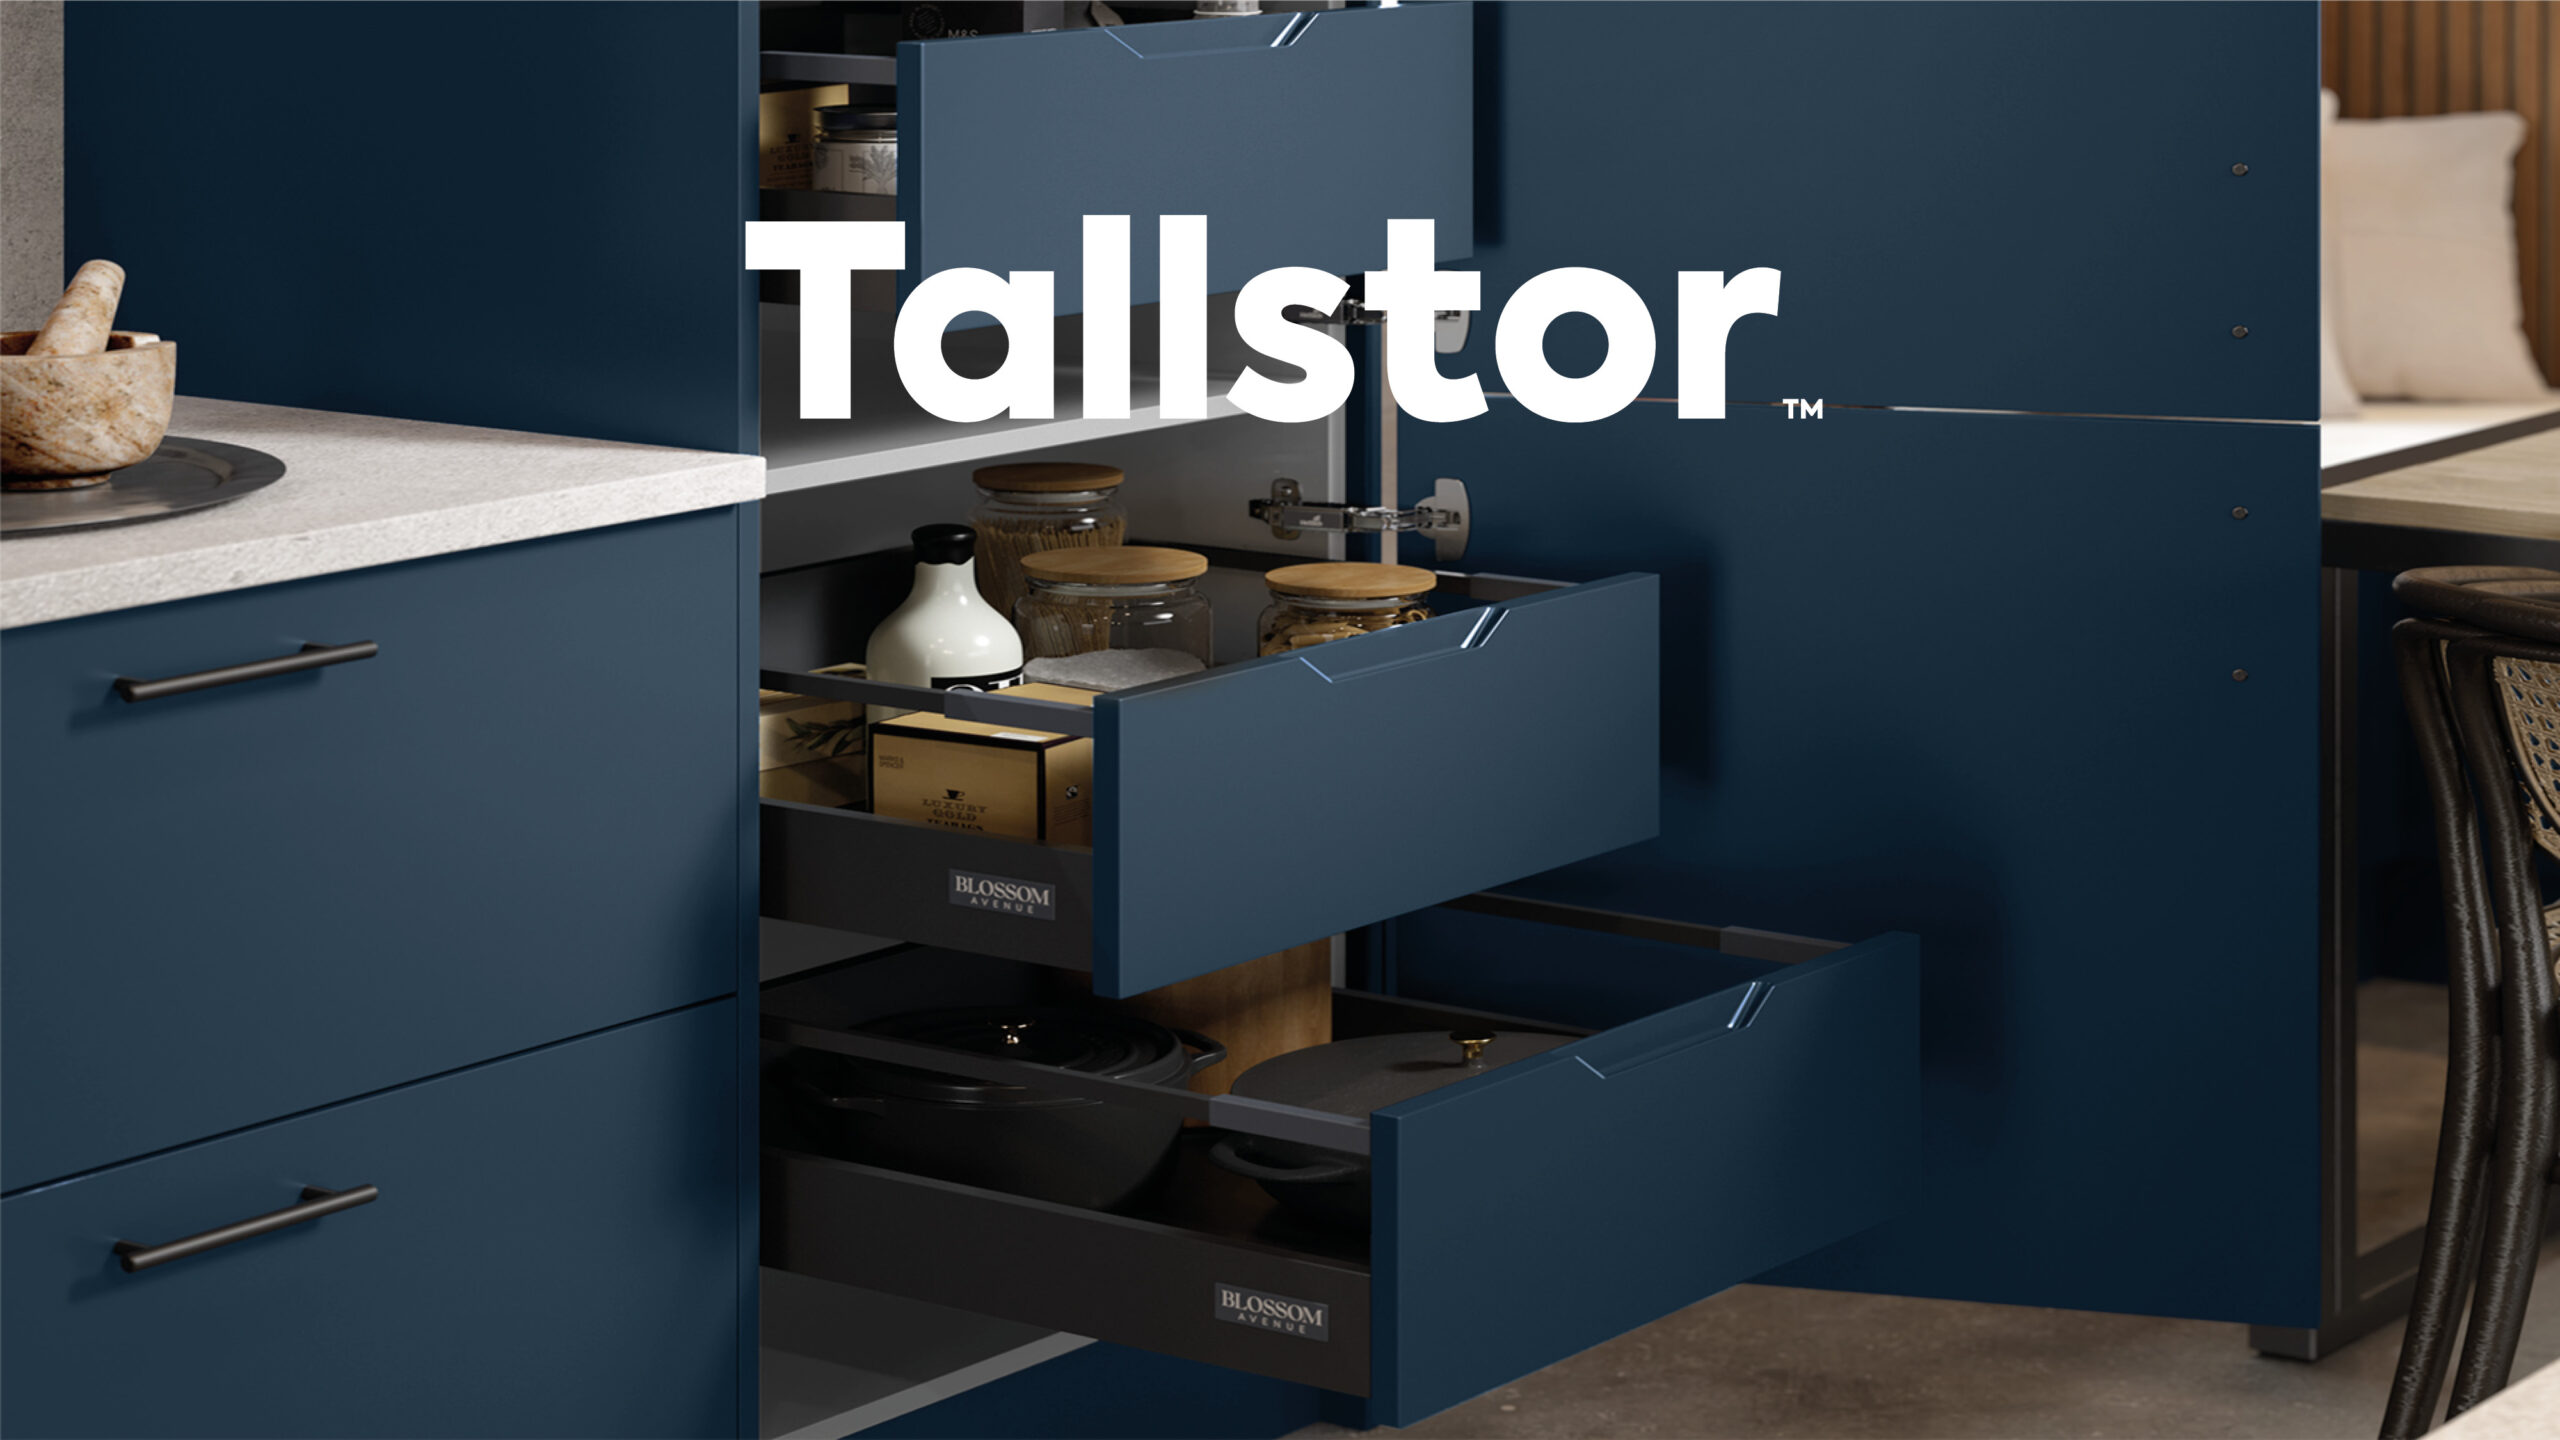 Say Hello To Tallstor